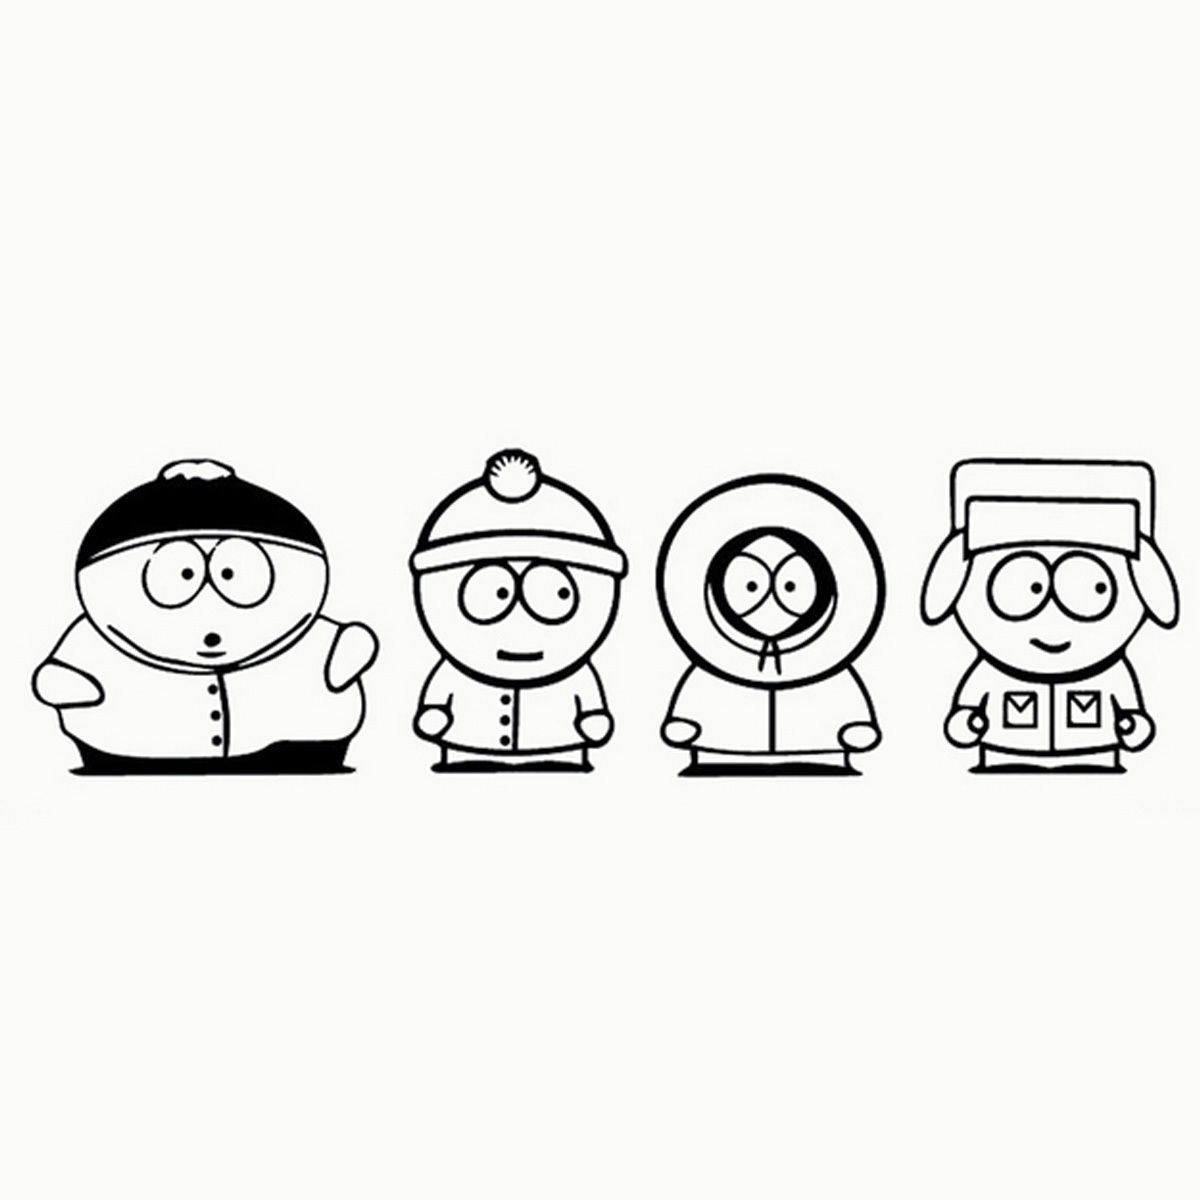 1 59 Funny Jdm South Park Car Window Bedroom Decor Child Laptop Wall Sticker Ebay Home Garden South Park Tattoo South Park Cartoon Tattoos